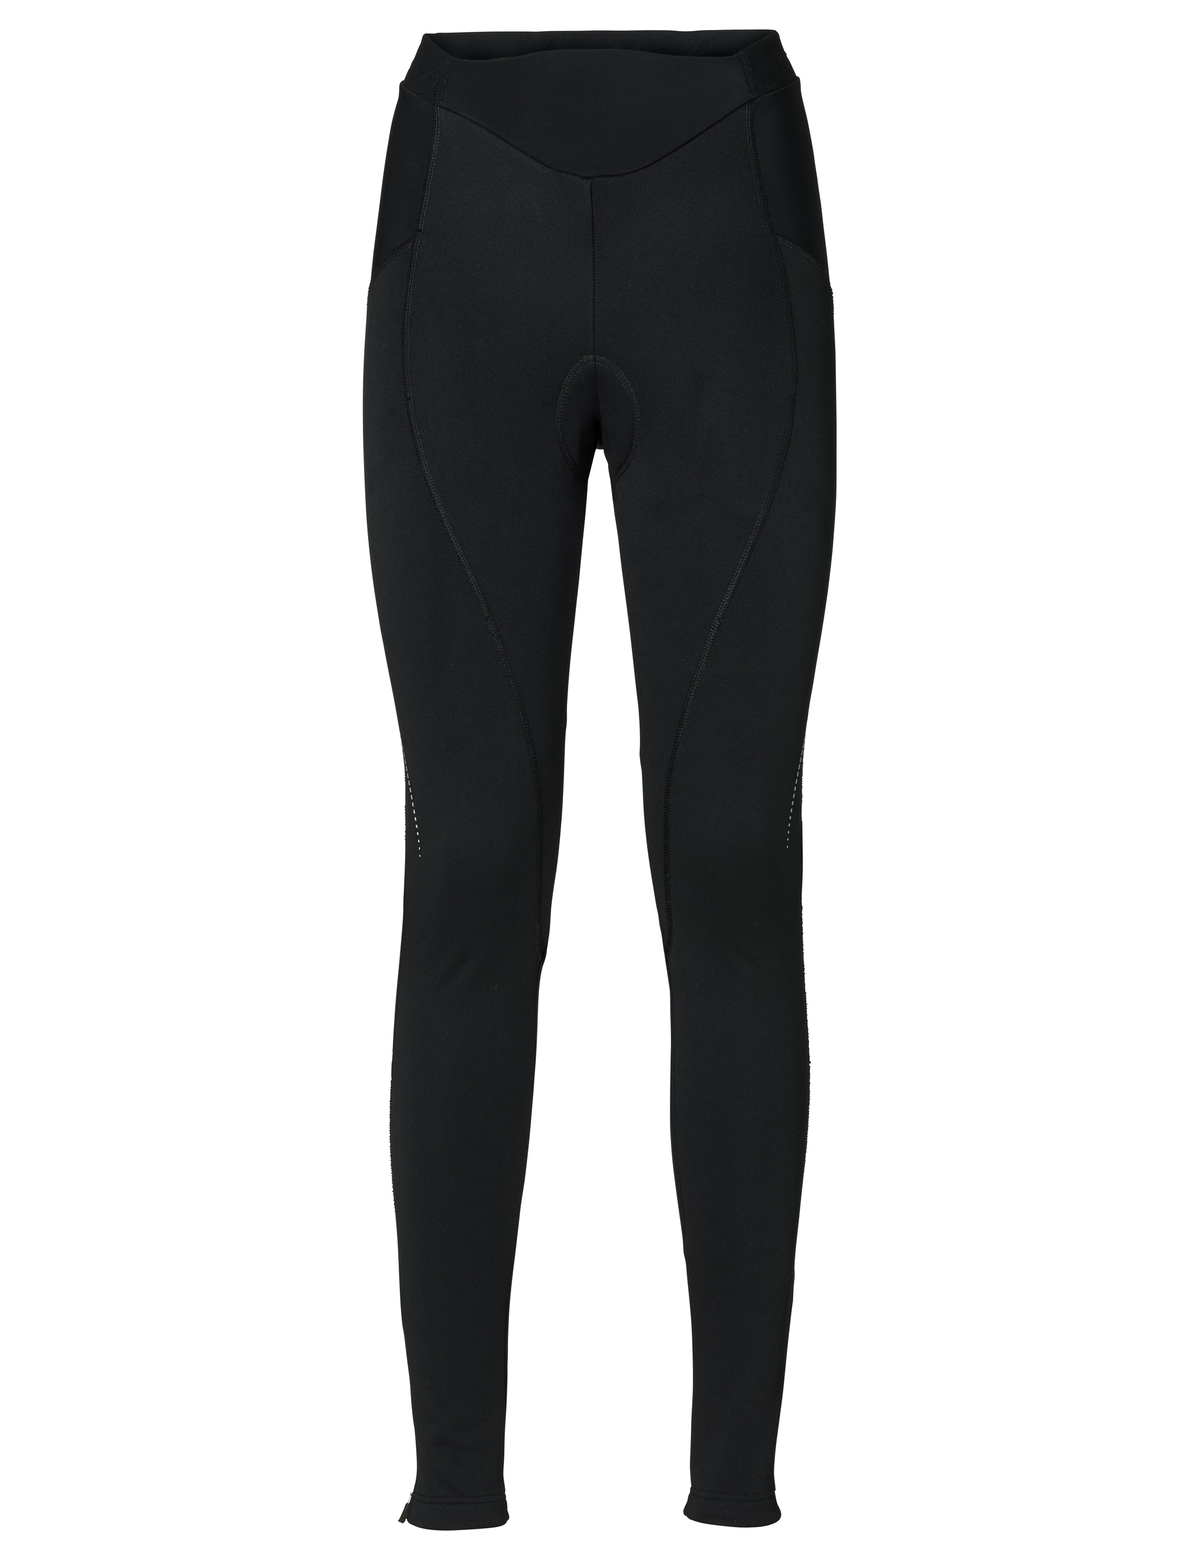 VAUDE Women´s Advanced Warm Pants II black Größe 40 - schneider-sports